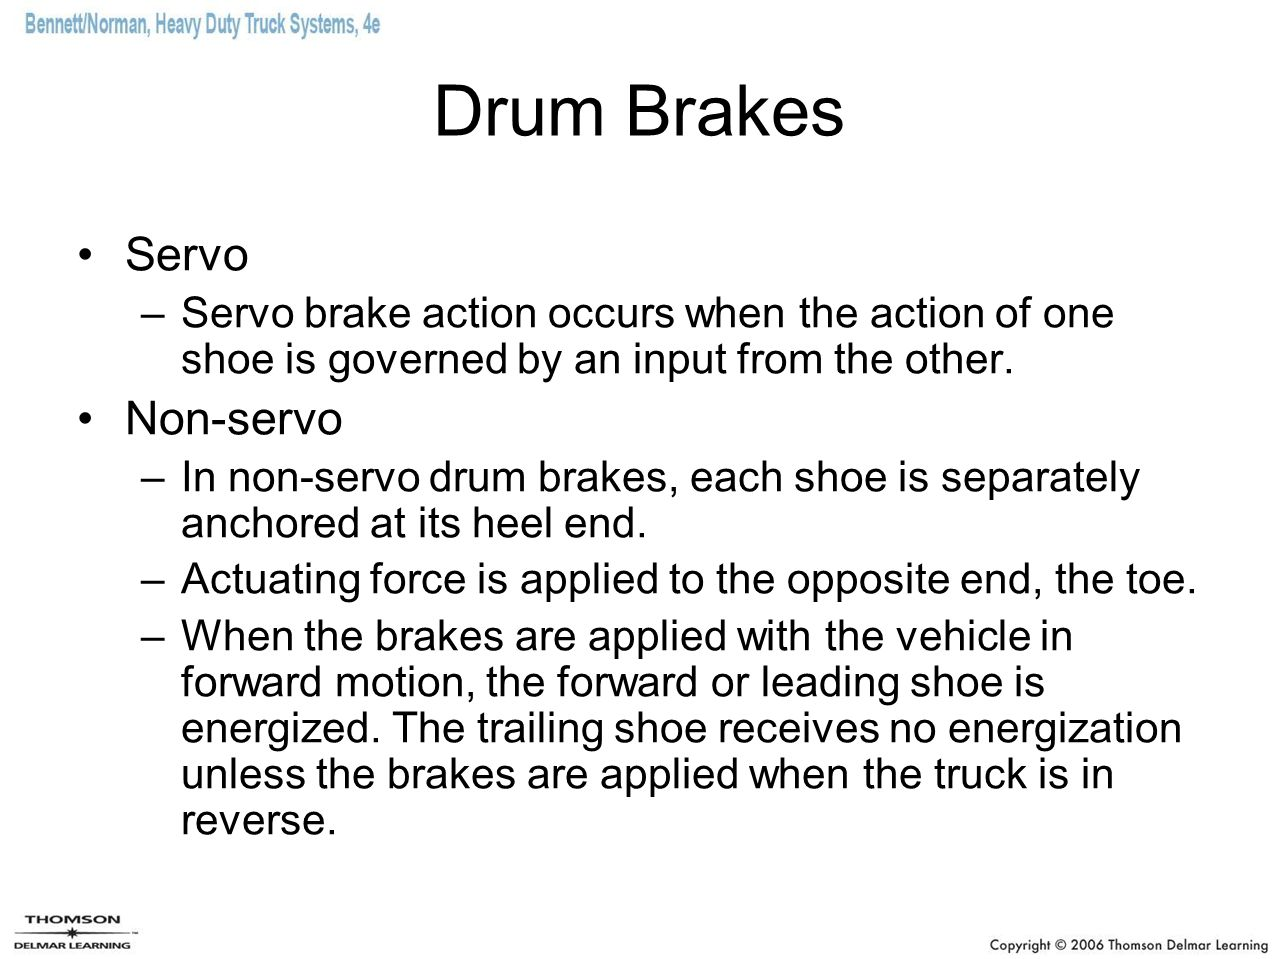 Hydraulic Brakes And Air Over Brake Systems Ppt Video All Info About Auto Repair Disc Mechanical Force Diagram Drum Servo Non